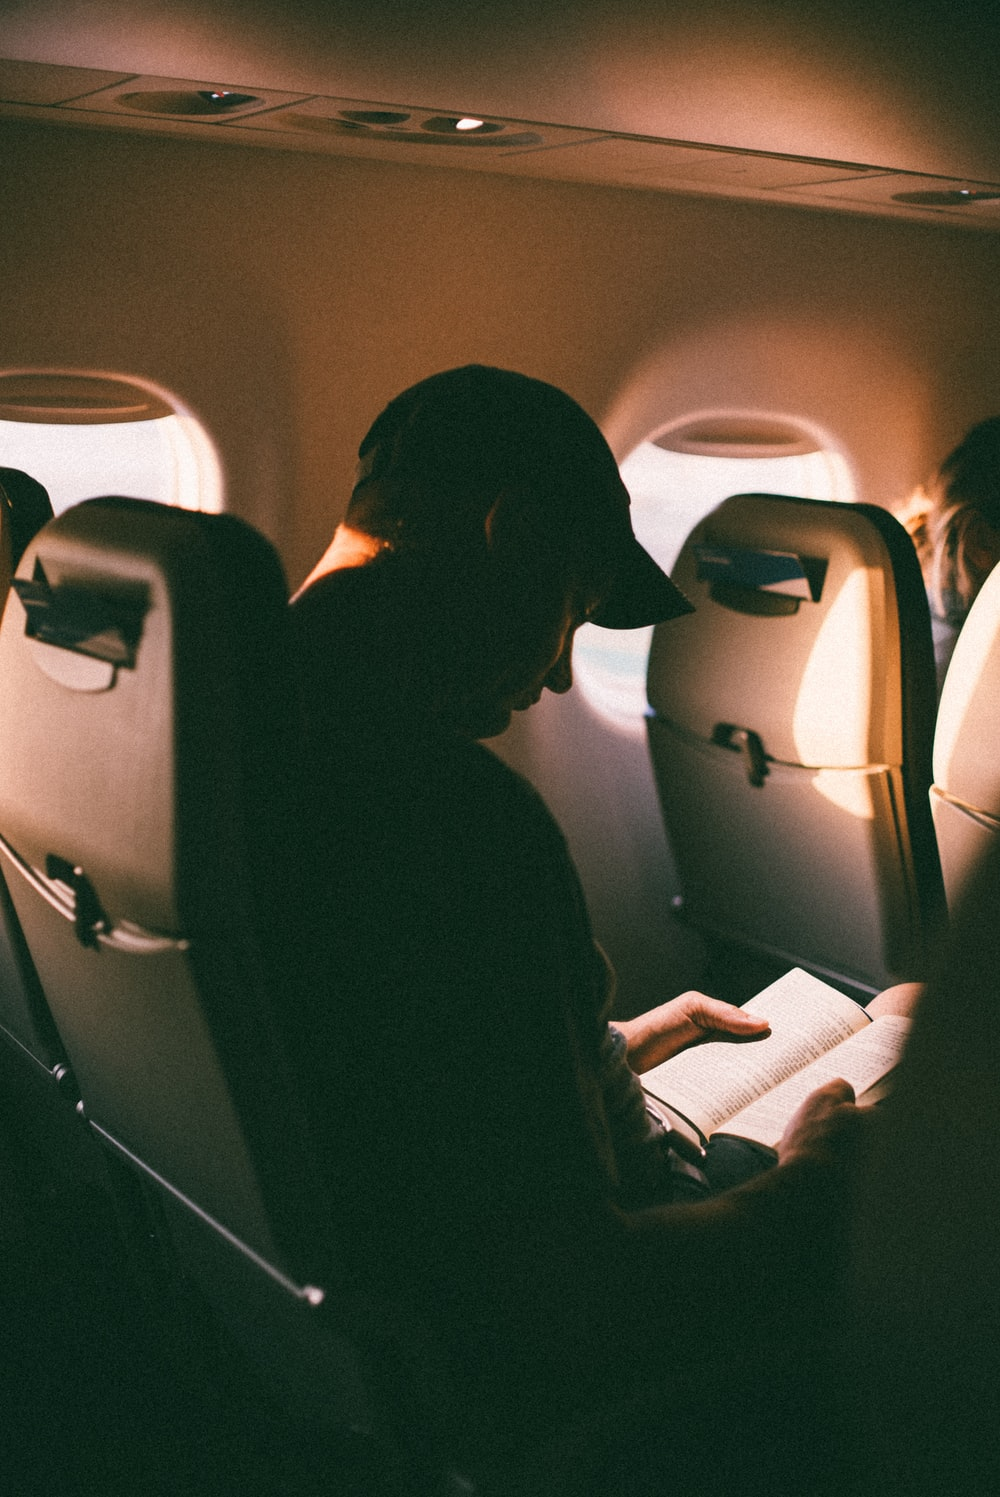 man sitting inside plane reading book